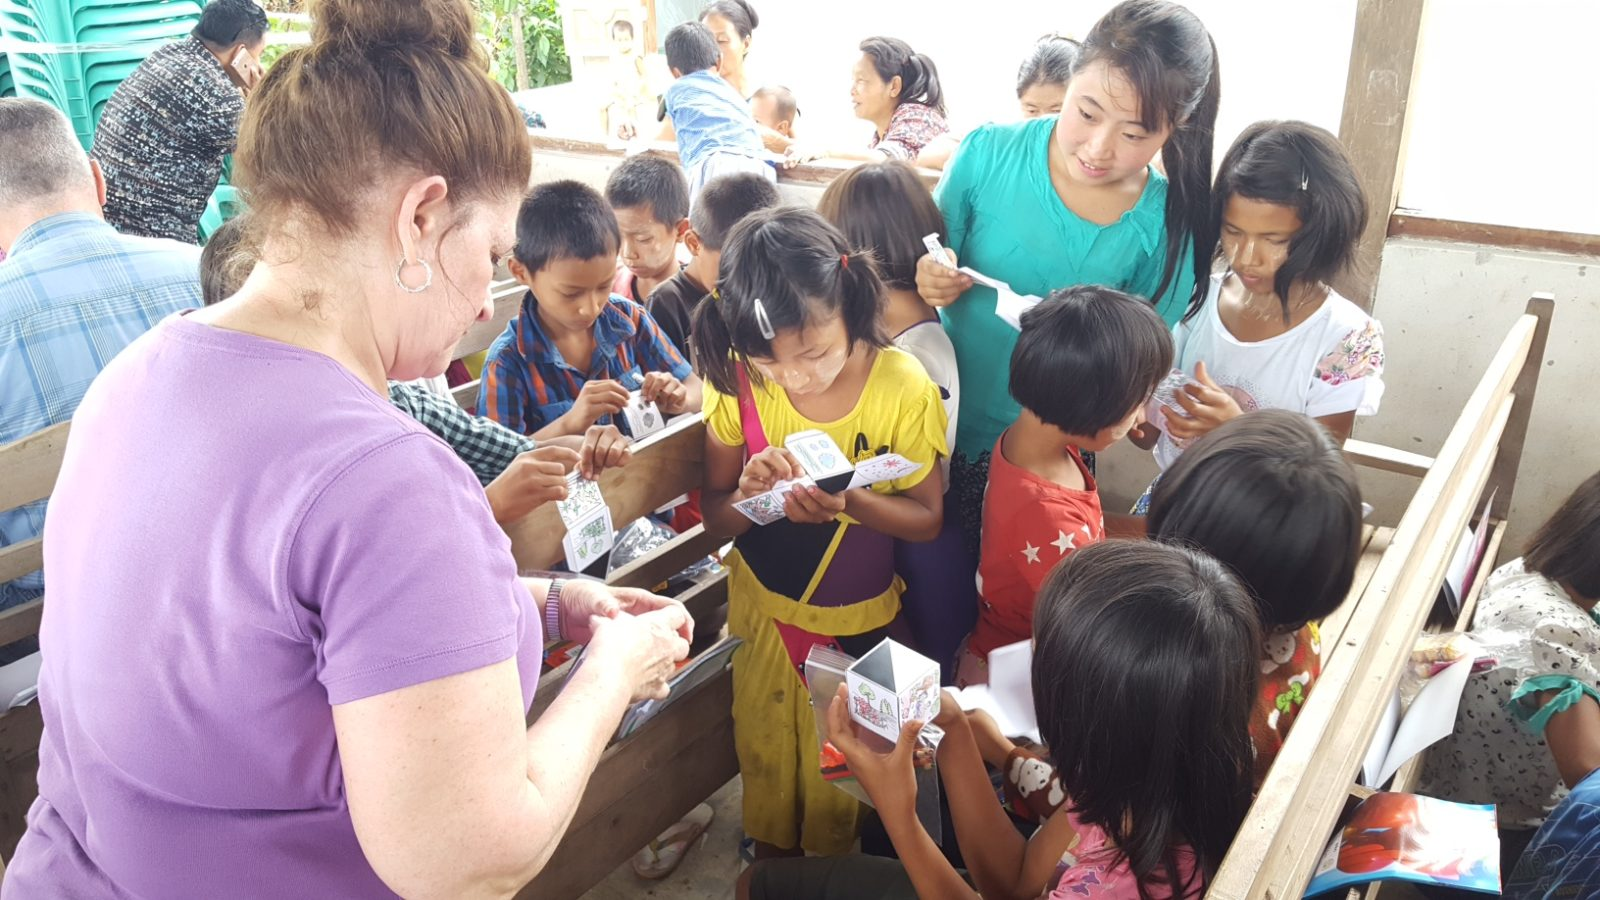 More than 100 children showed up daily for the Vacation Bible School